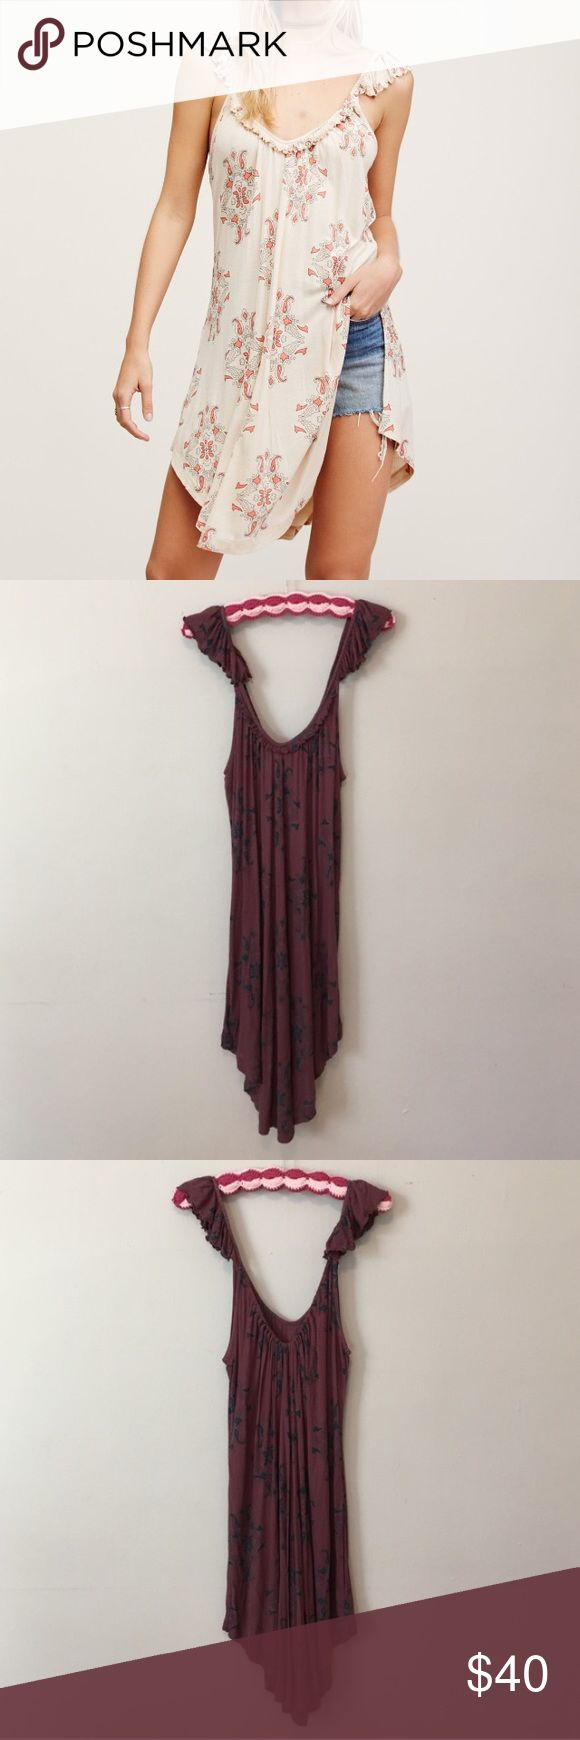 Free People Drifter Tank Tunic Purple Sz XS NWT Hey Honey! This sale is for a Free People Drifter Tank Tunic Purple Sz XS NWT. First picture is just for fit, this Tunic is actually a purple/pink color. Please ask any questions you have because all sales are final. 🚫Trades😊 Free People Tops Tunics